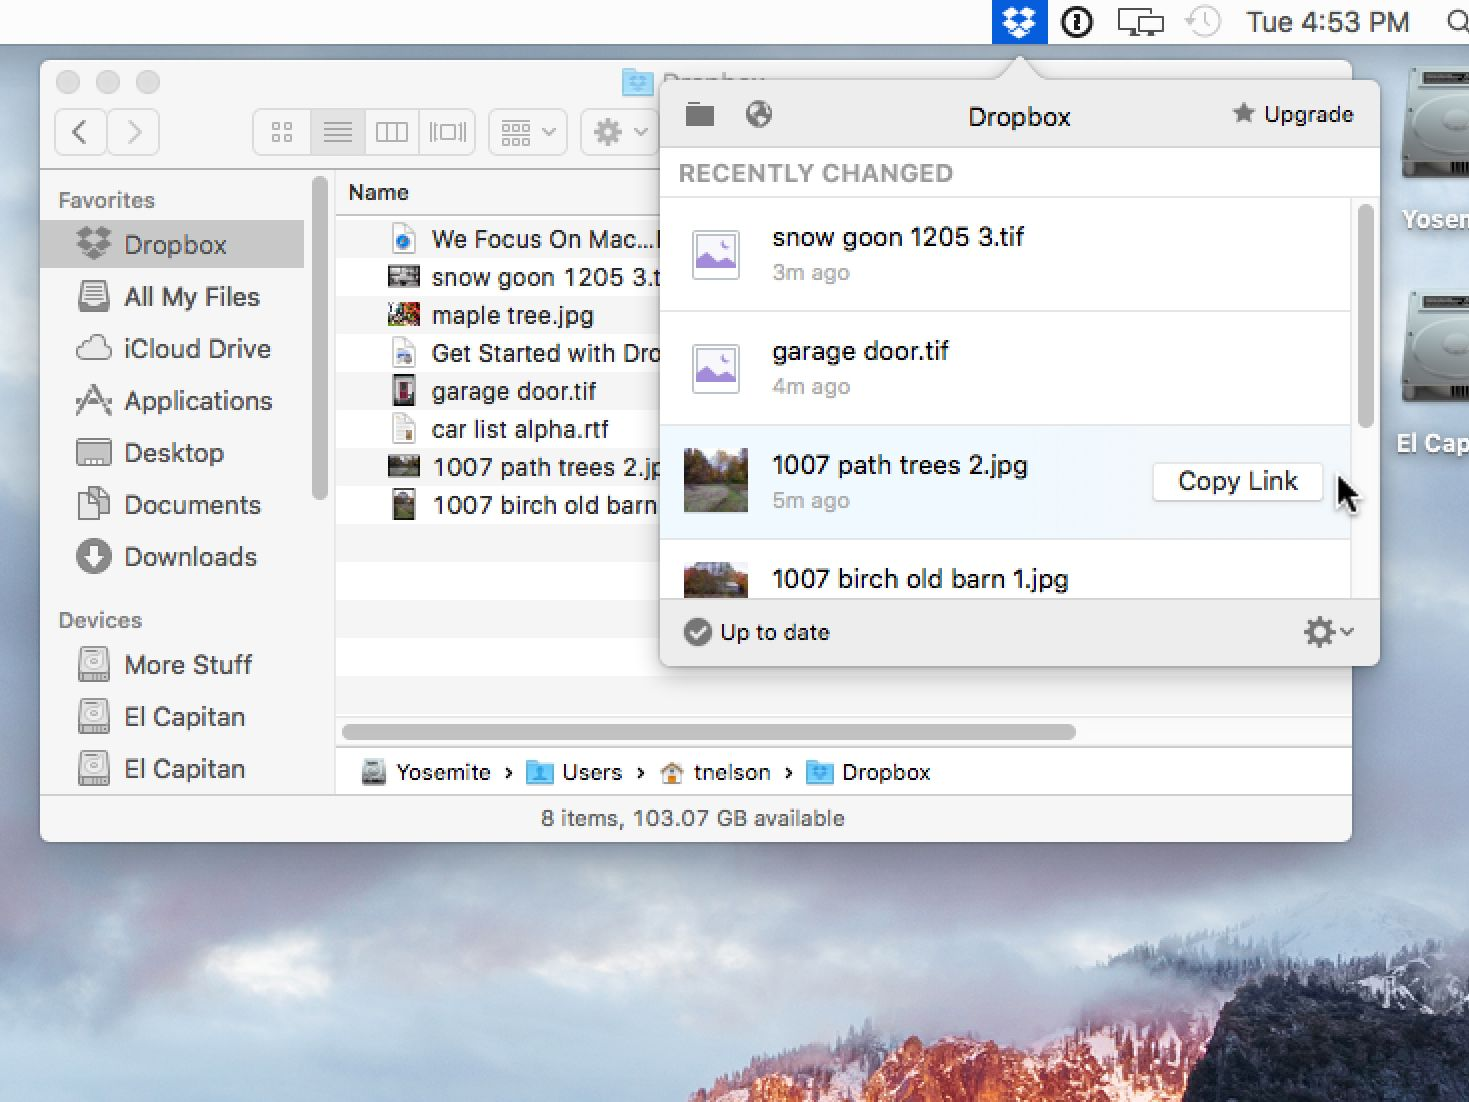 Installing and Using Dropbox on Your Mac